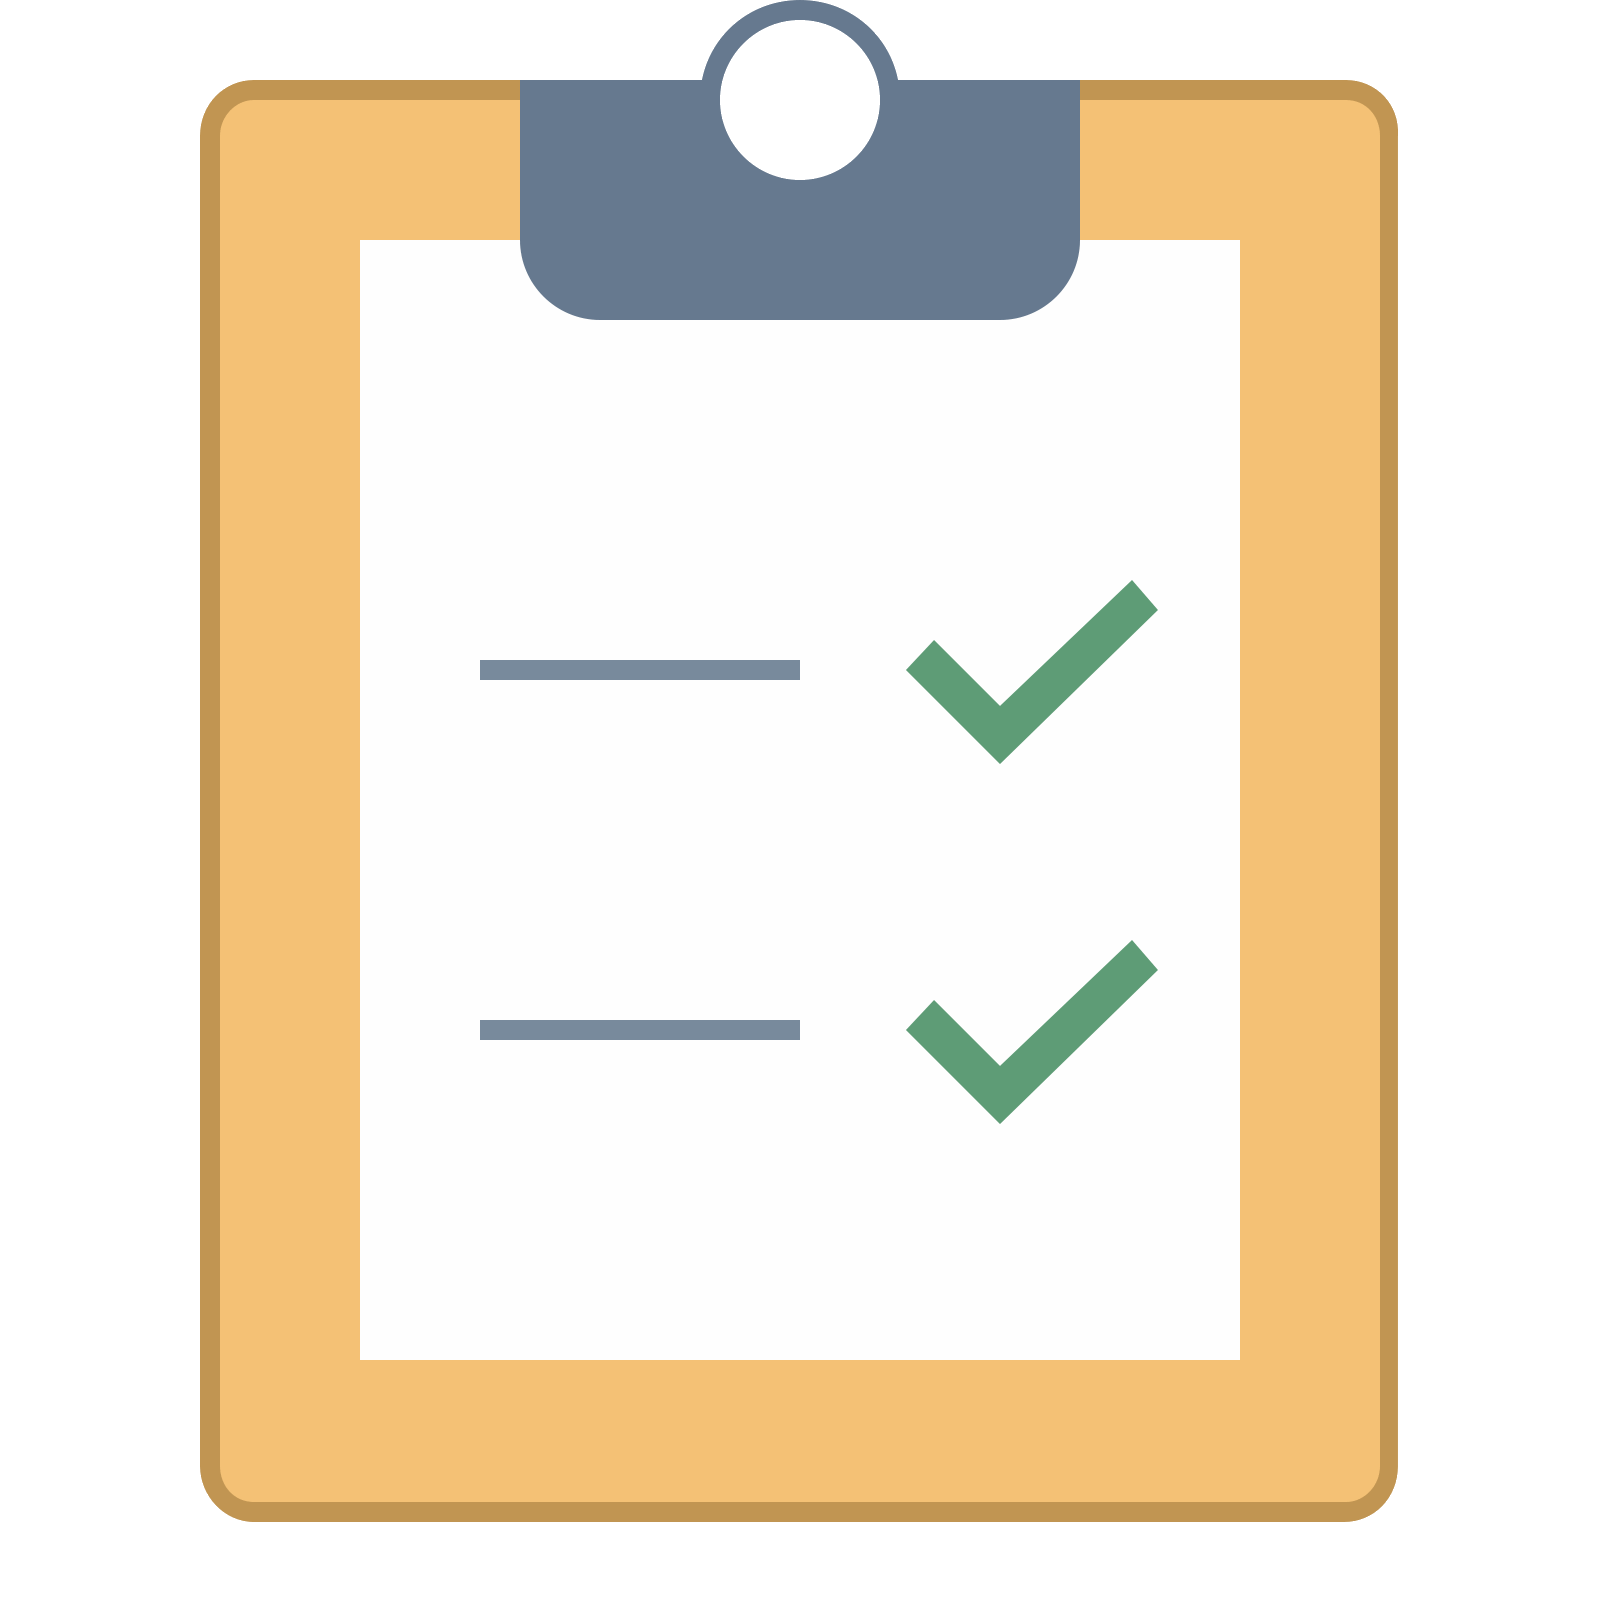 Vector test png. Passed icon free download